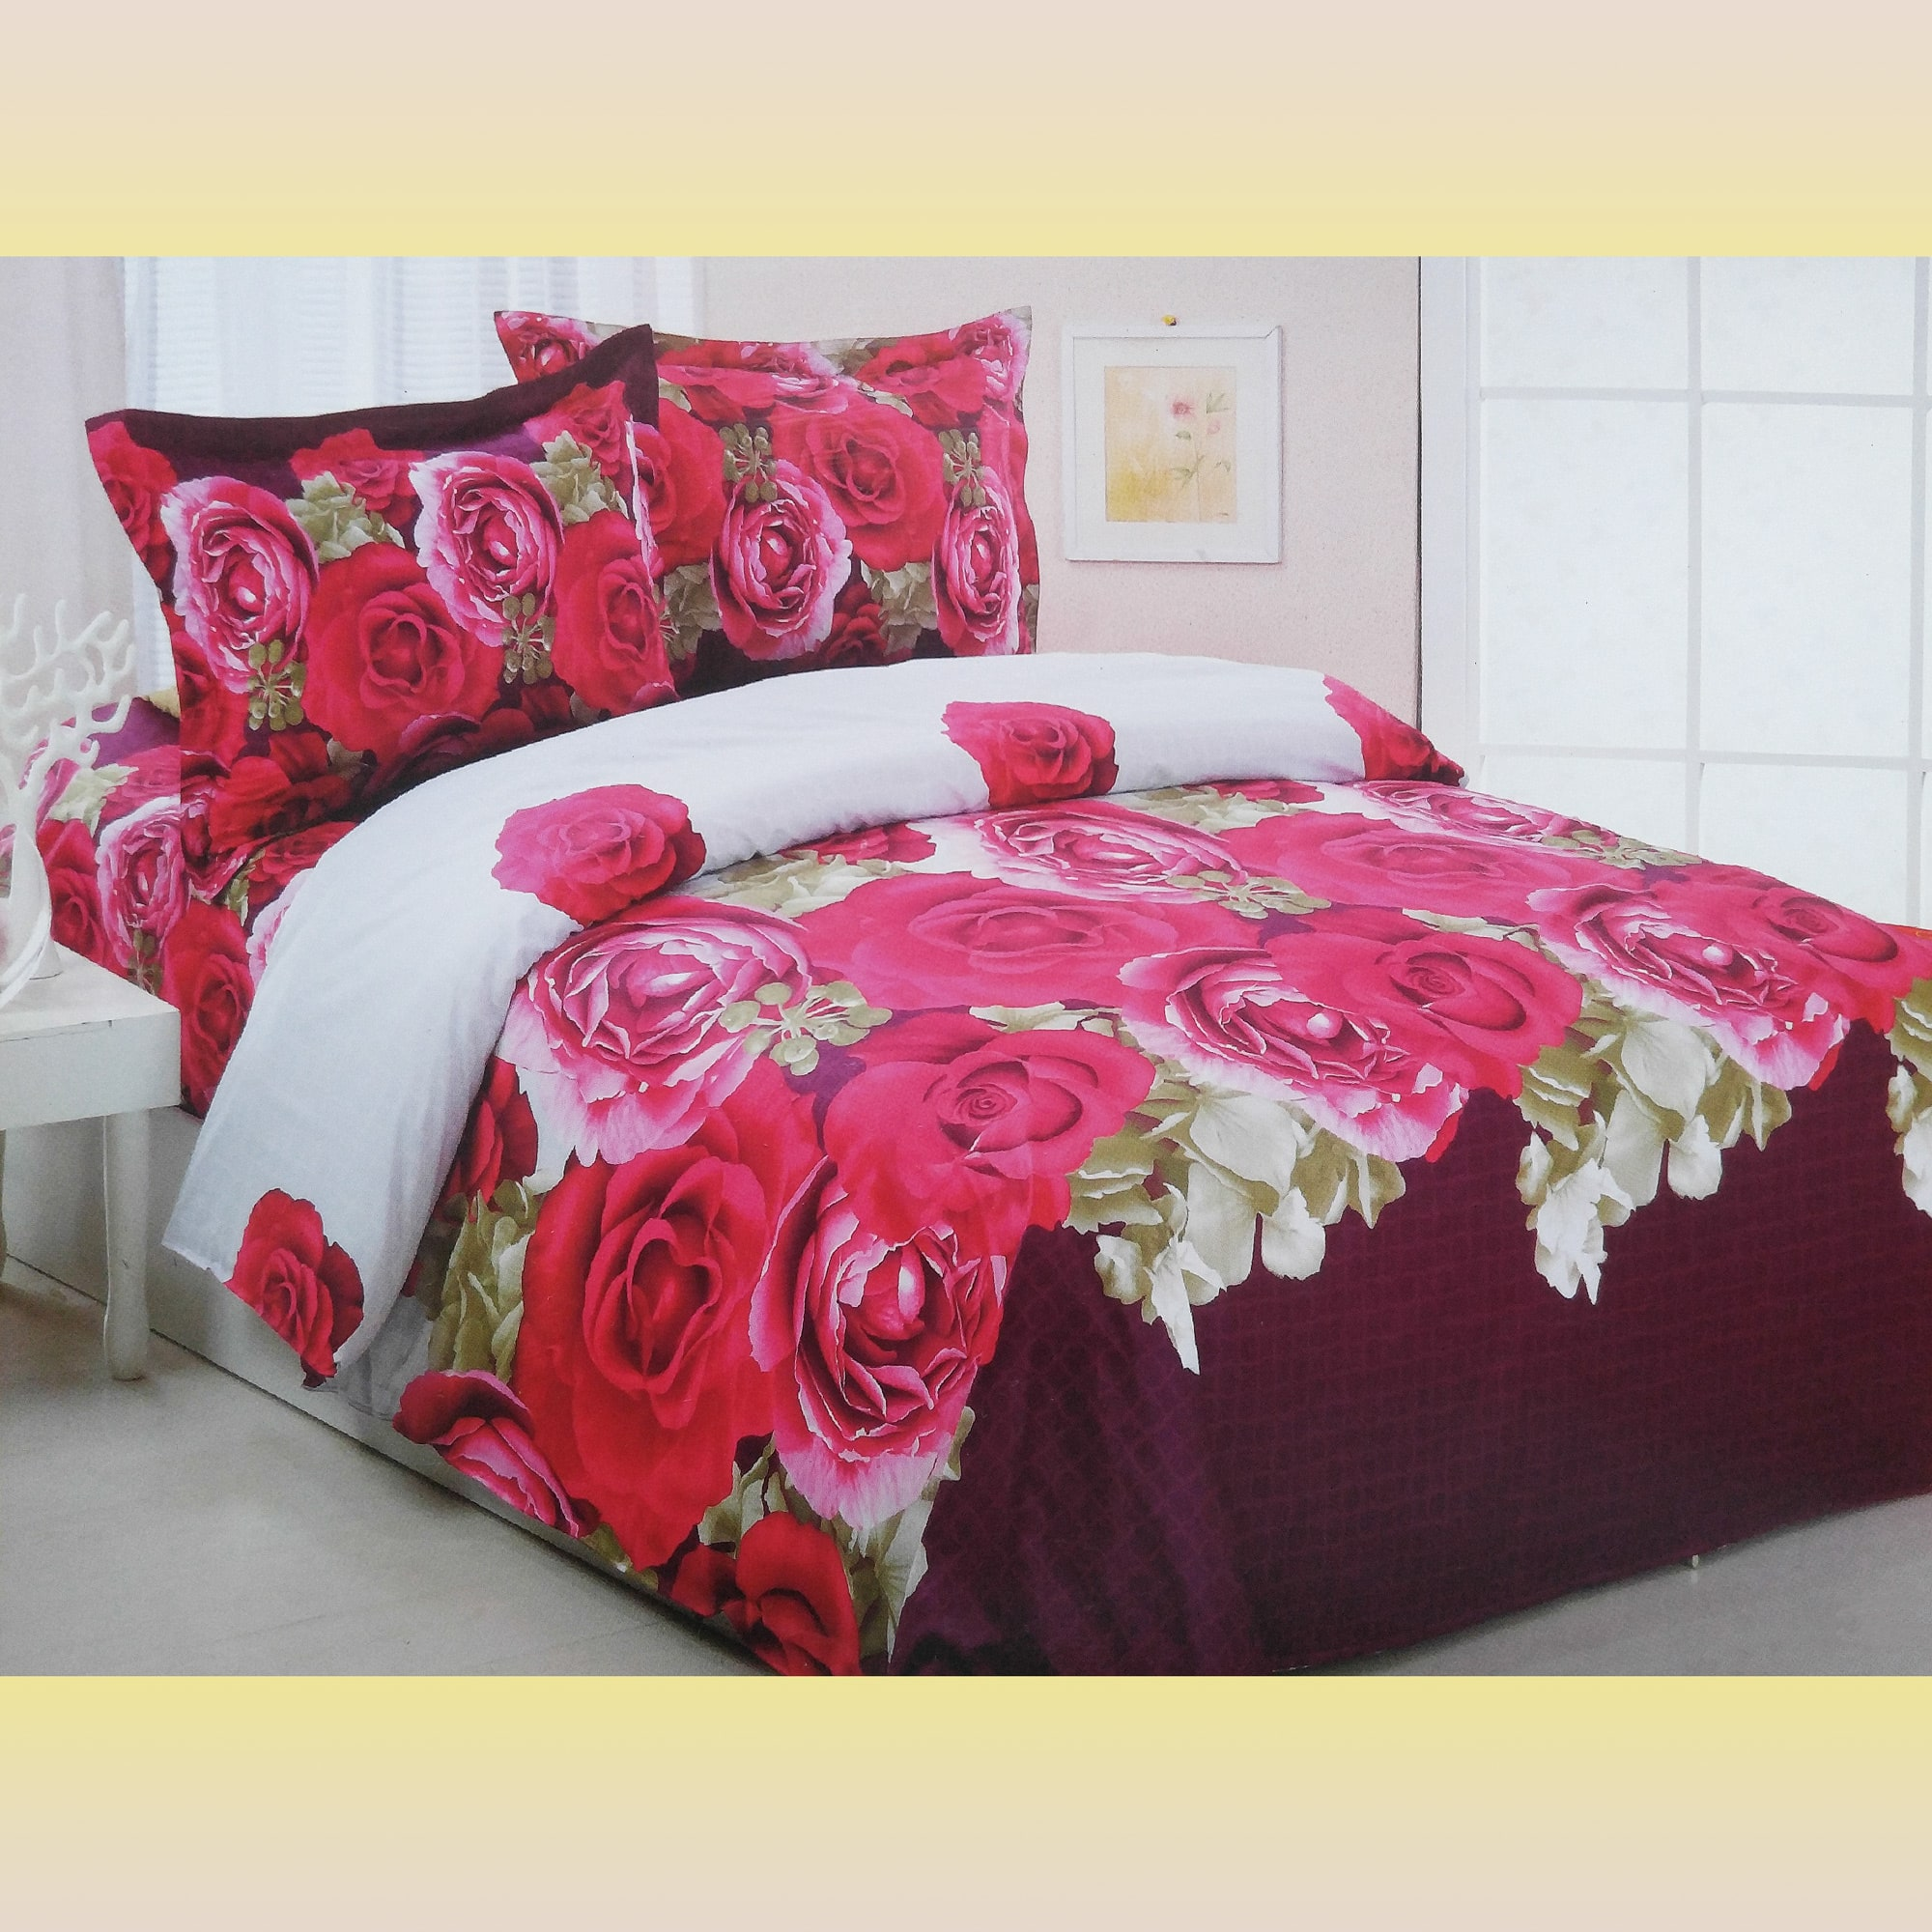 Duvet Cover Set Luxury Full Queen Bedding Le Vele Le234q